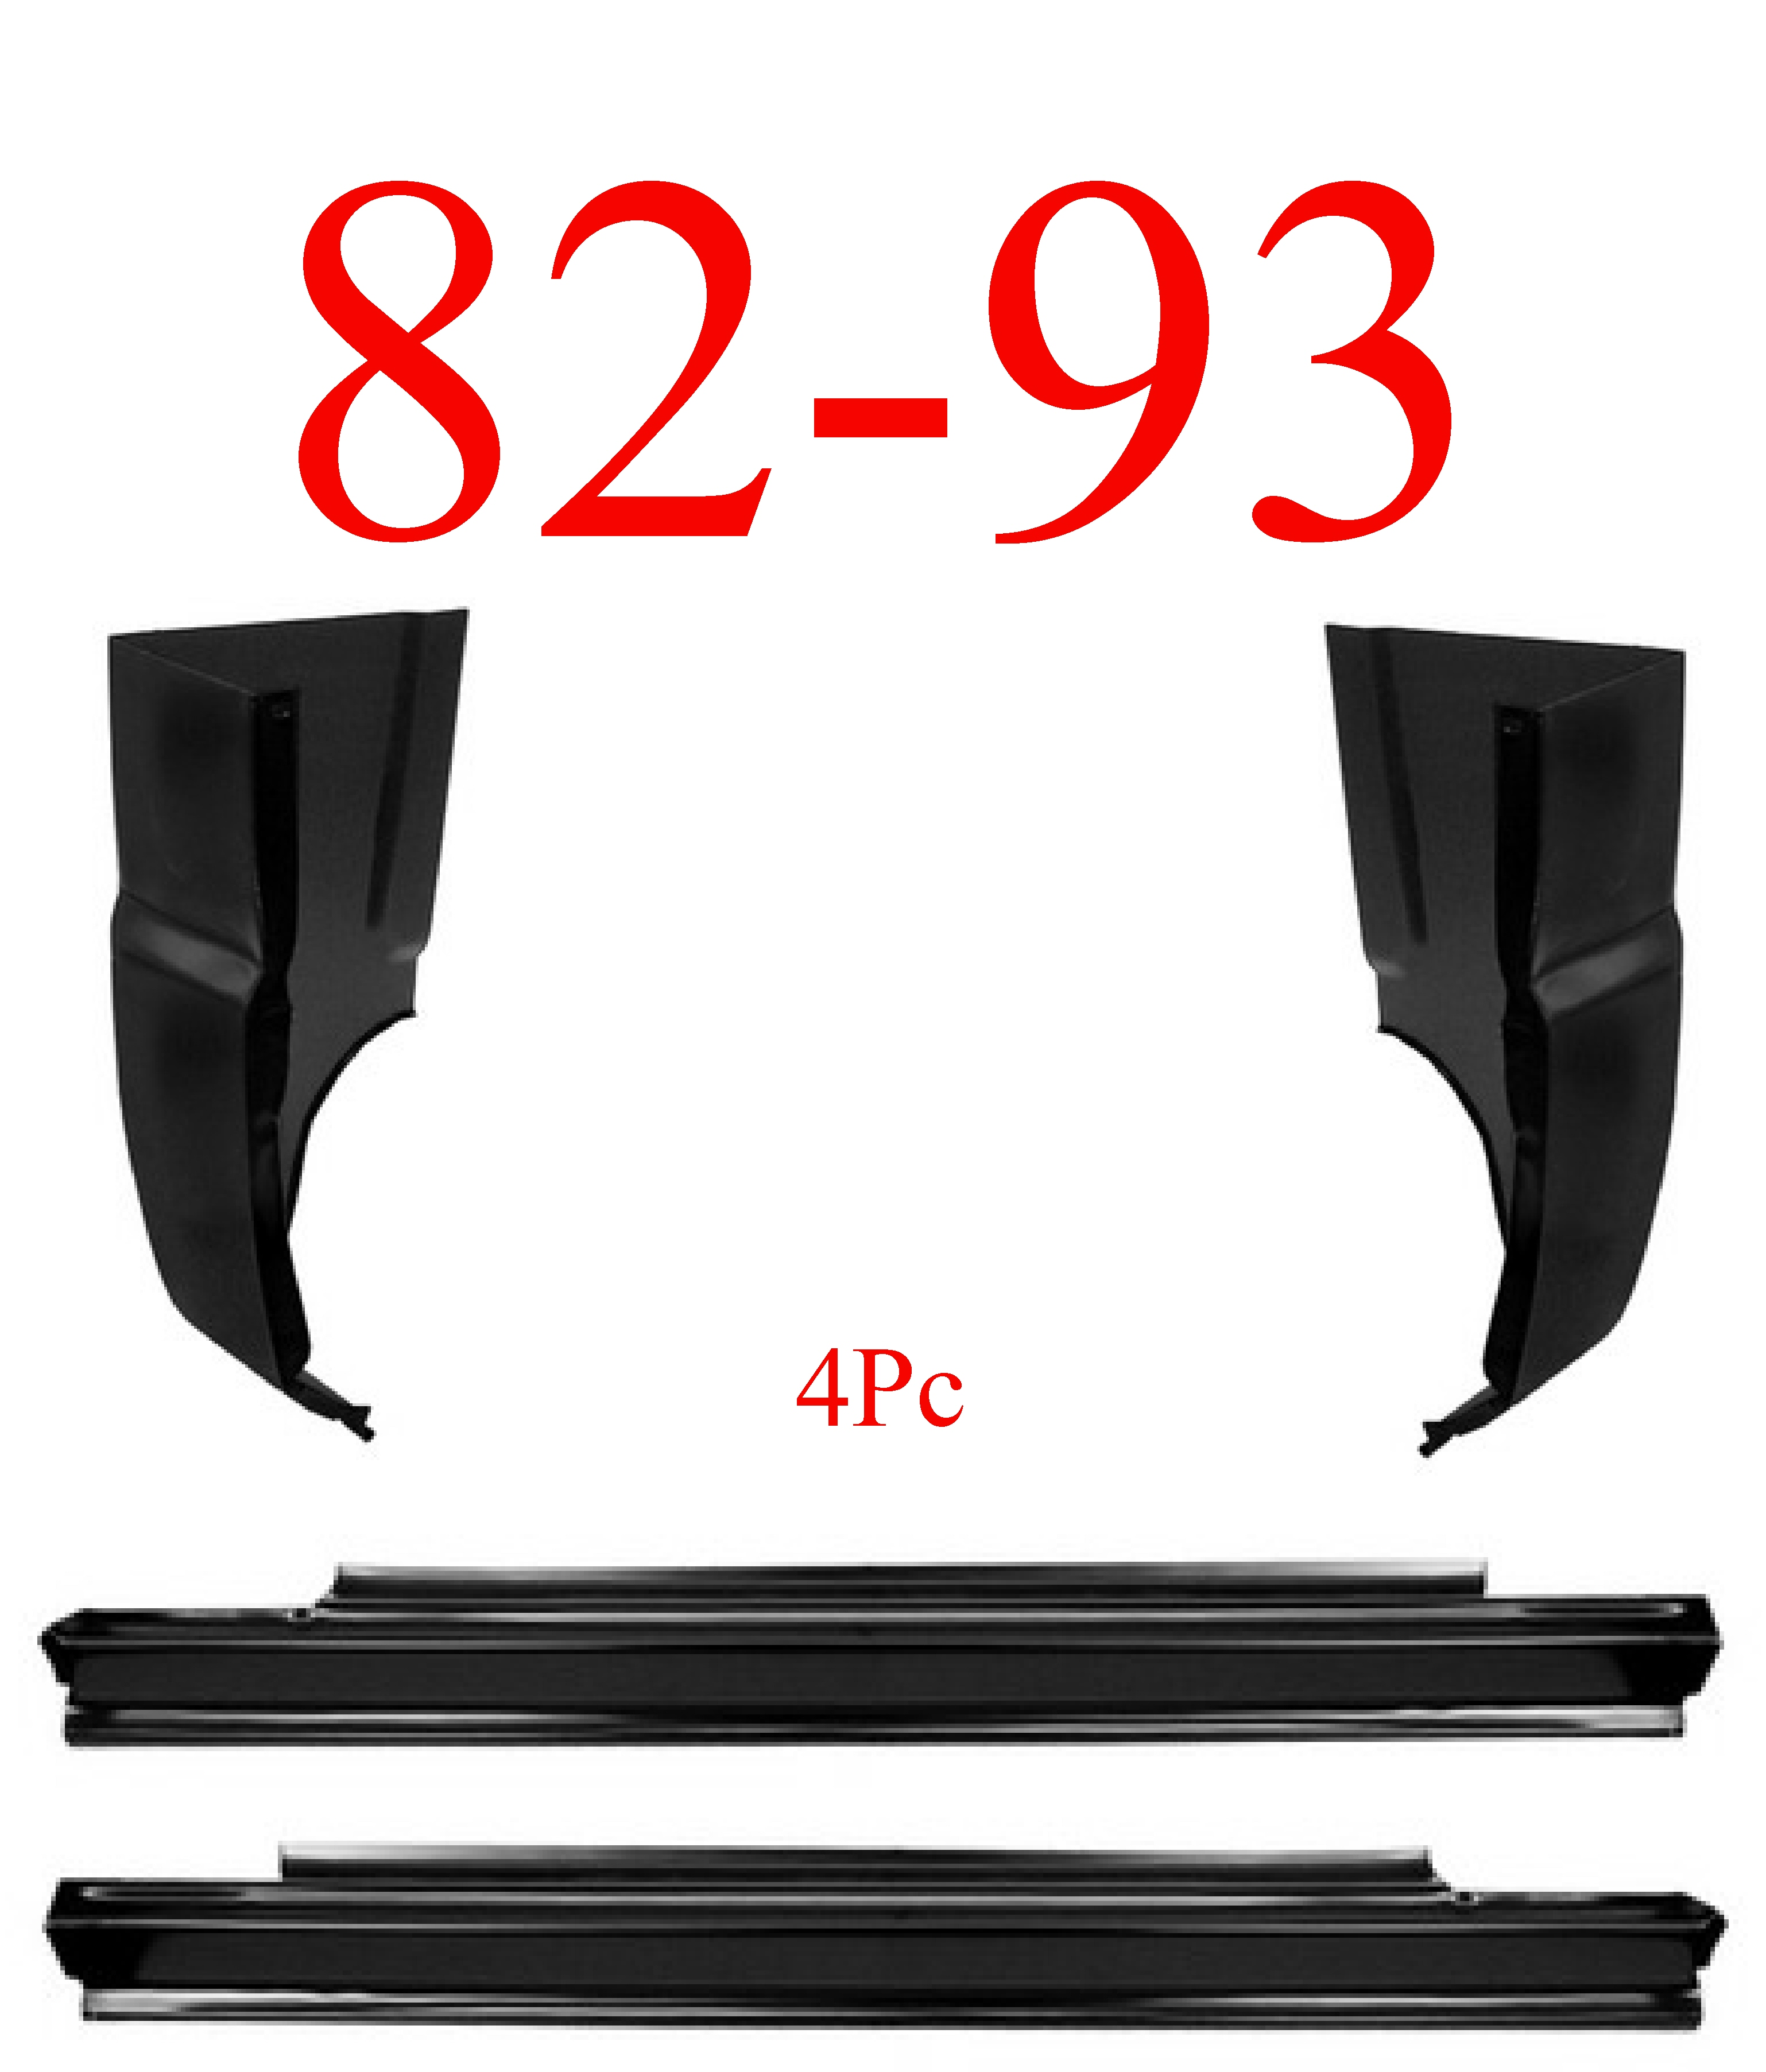 82-93 Chevy S10 4Pc Slip-On Rocker & Cab Corner